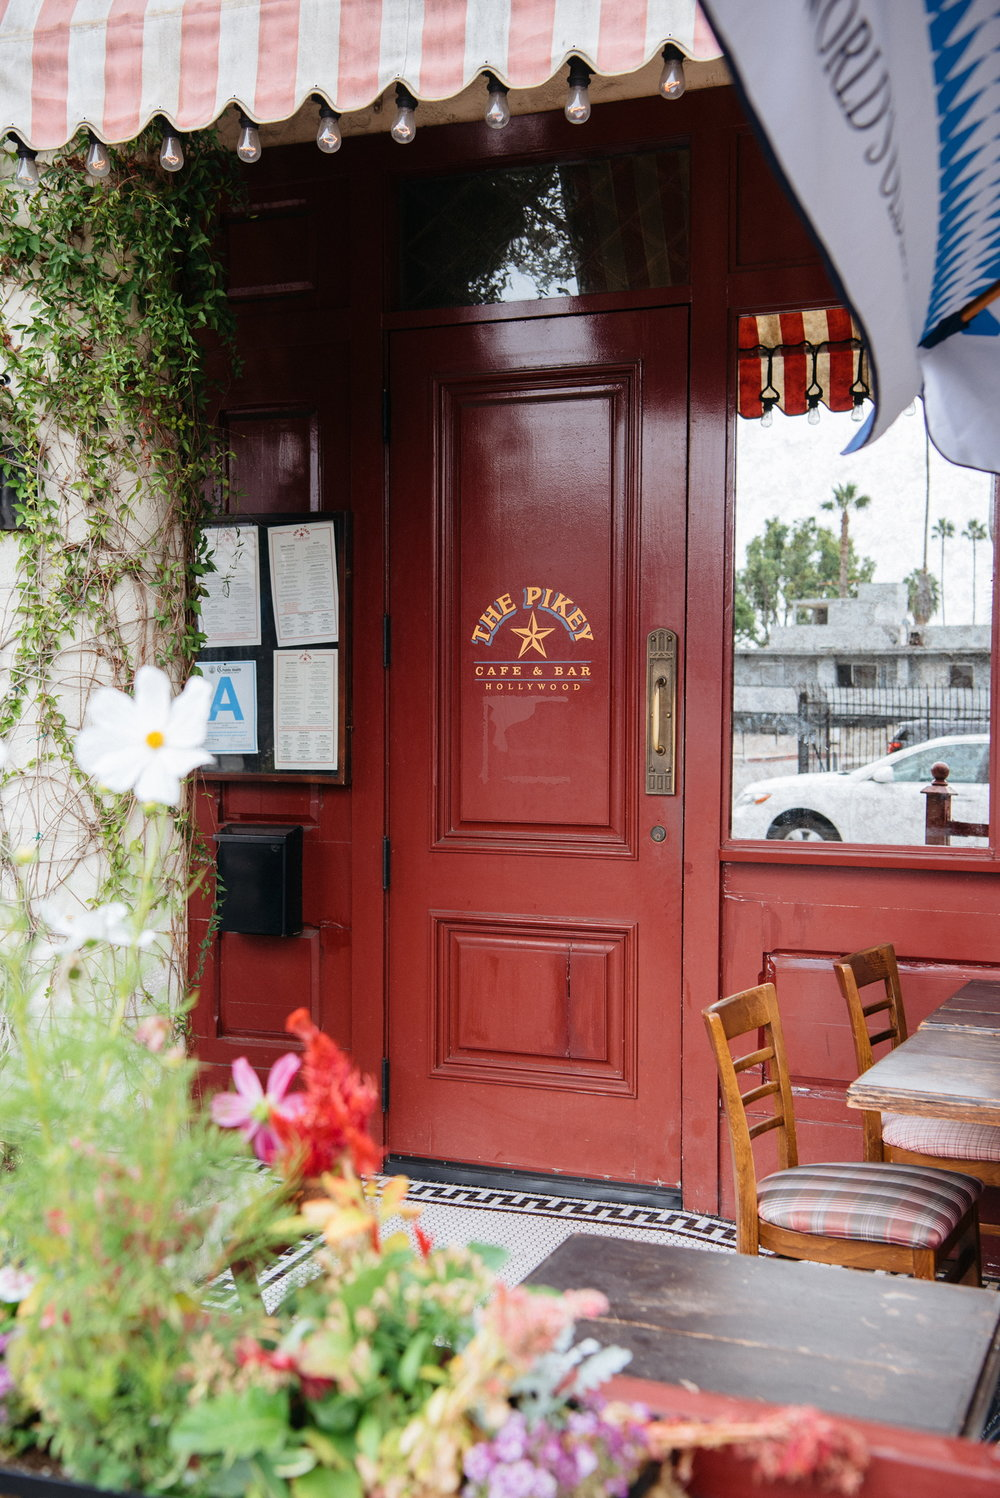 Entrance to The Pikey, Los Angeles, CA